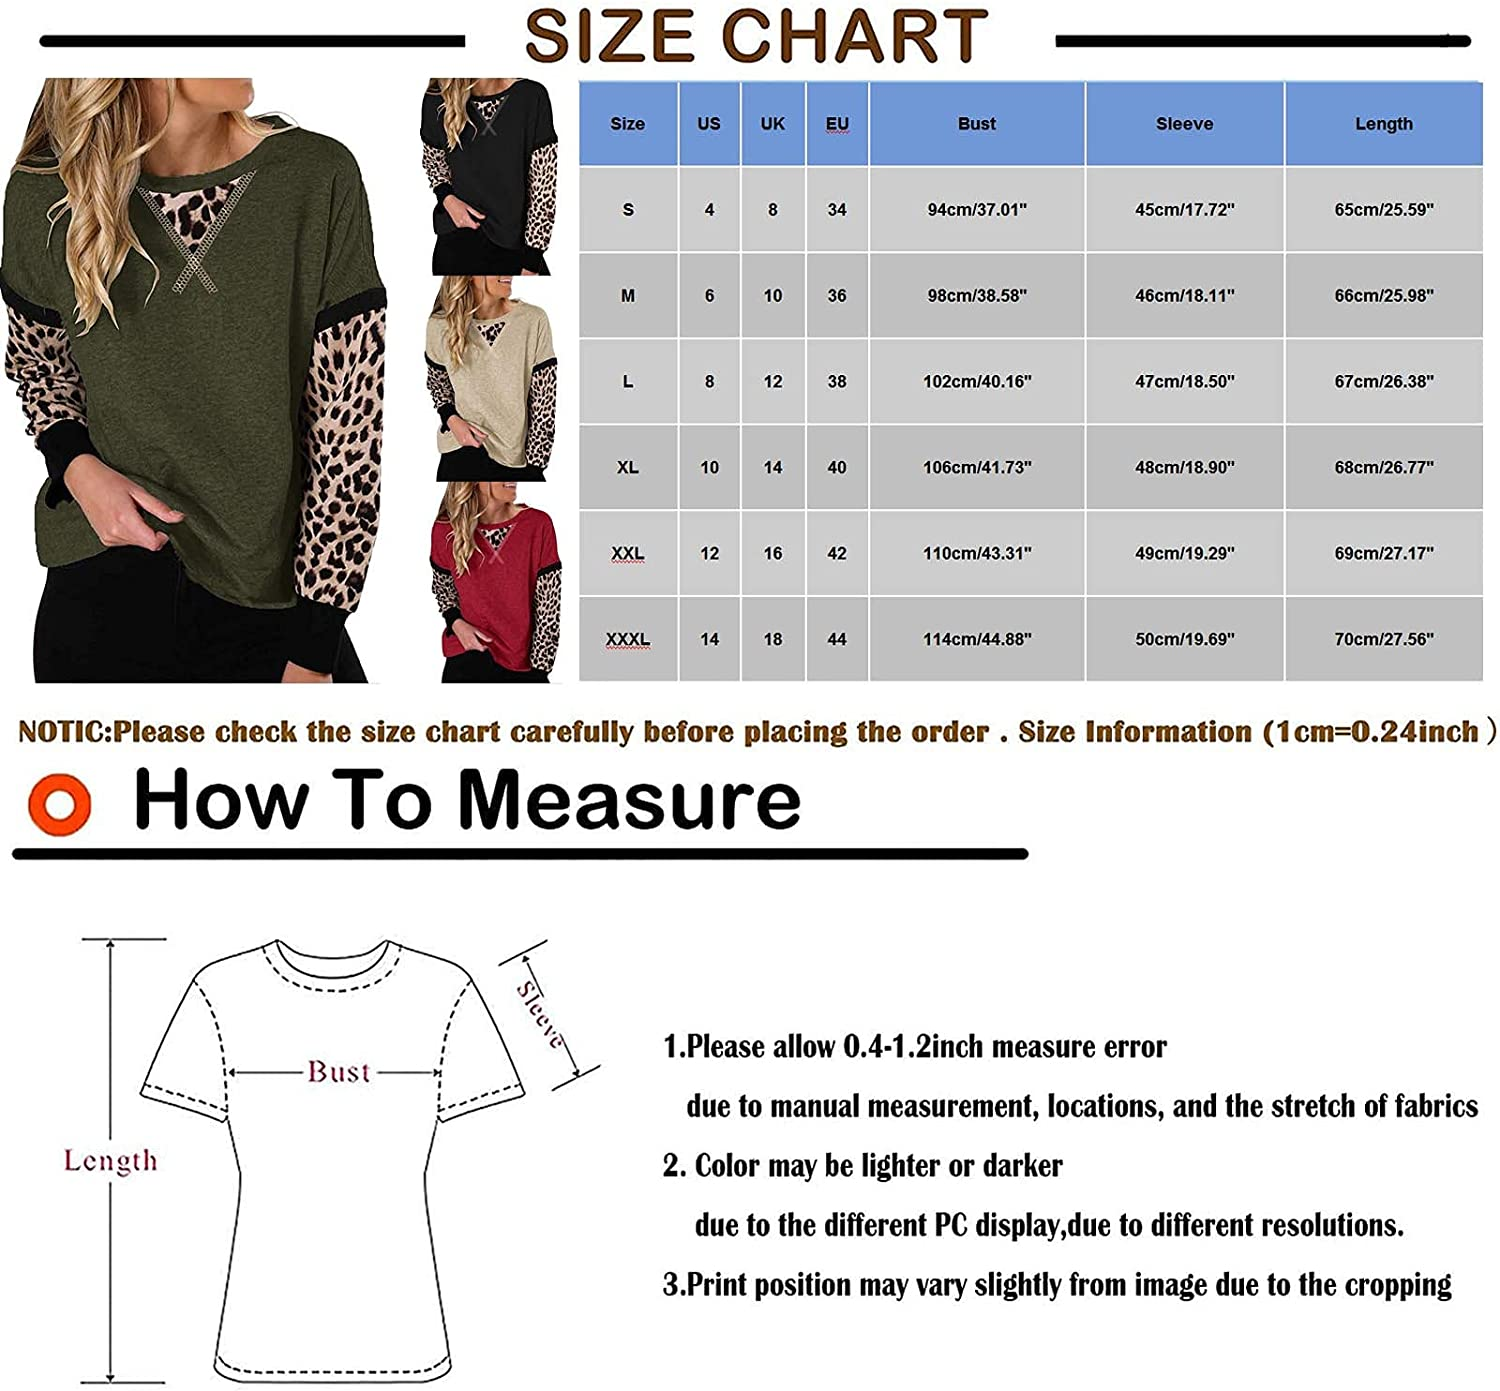 VonVonCo Pullover Sweaters for Women Long Sleeve Tops Round Neck Sweatshirts Casual Leopard Splicing Shirts